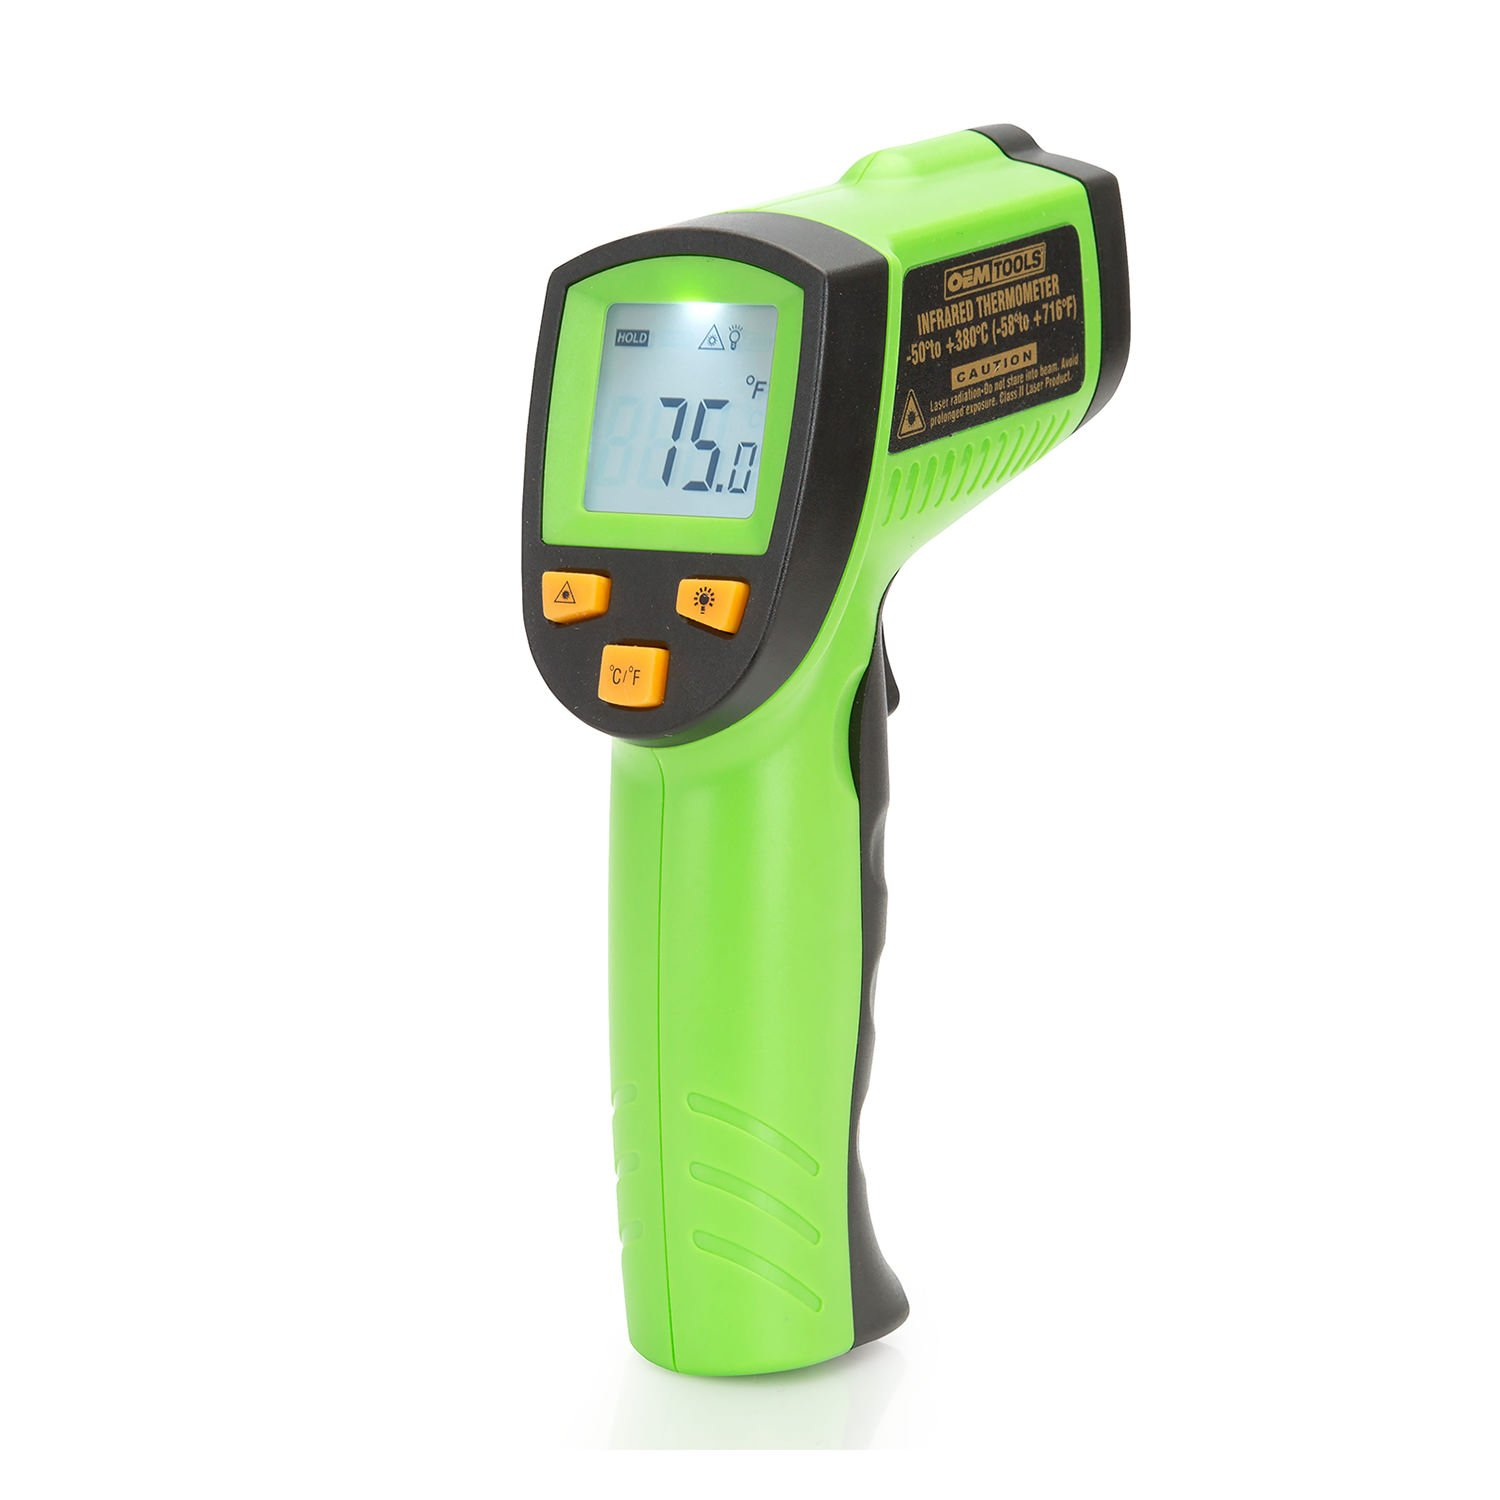 OEMTOOLS 25245 Infrared Thermometer